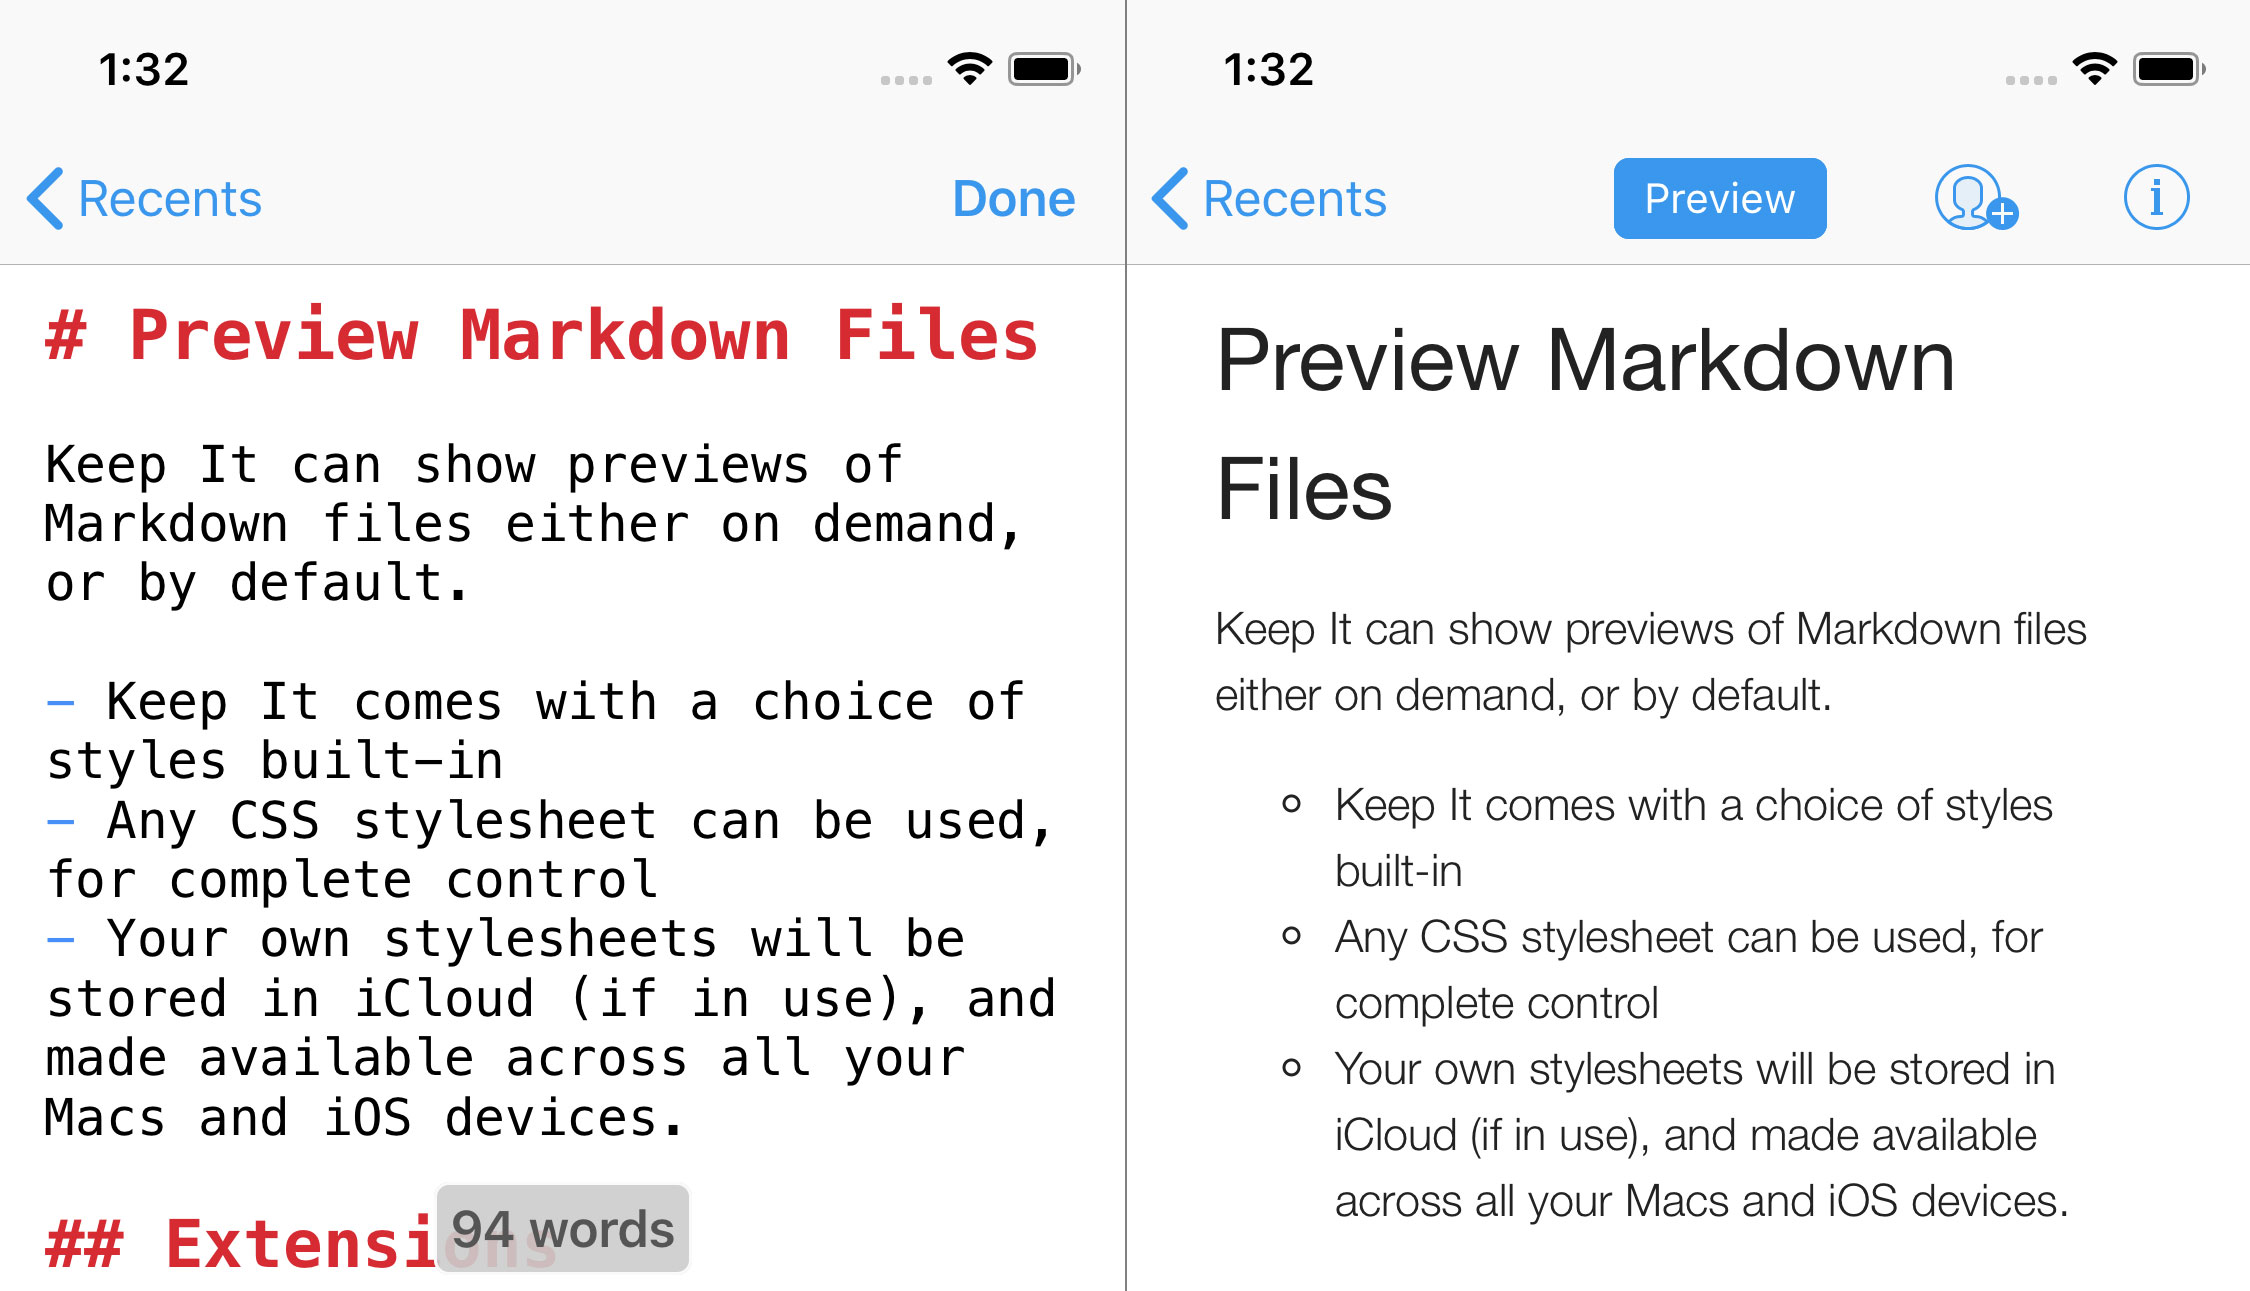 Markdown editor in Keep It for iPhone